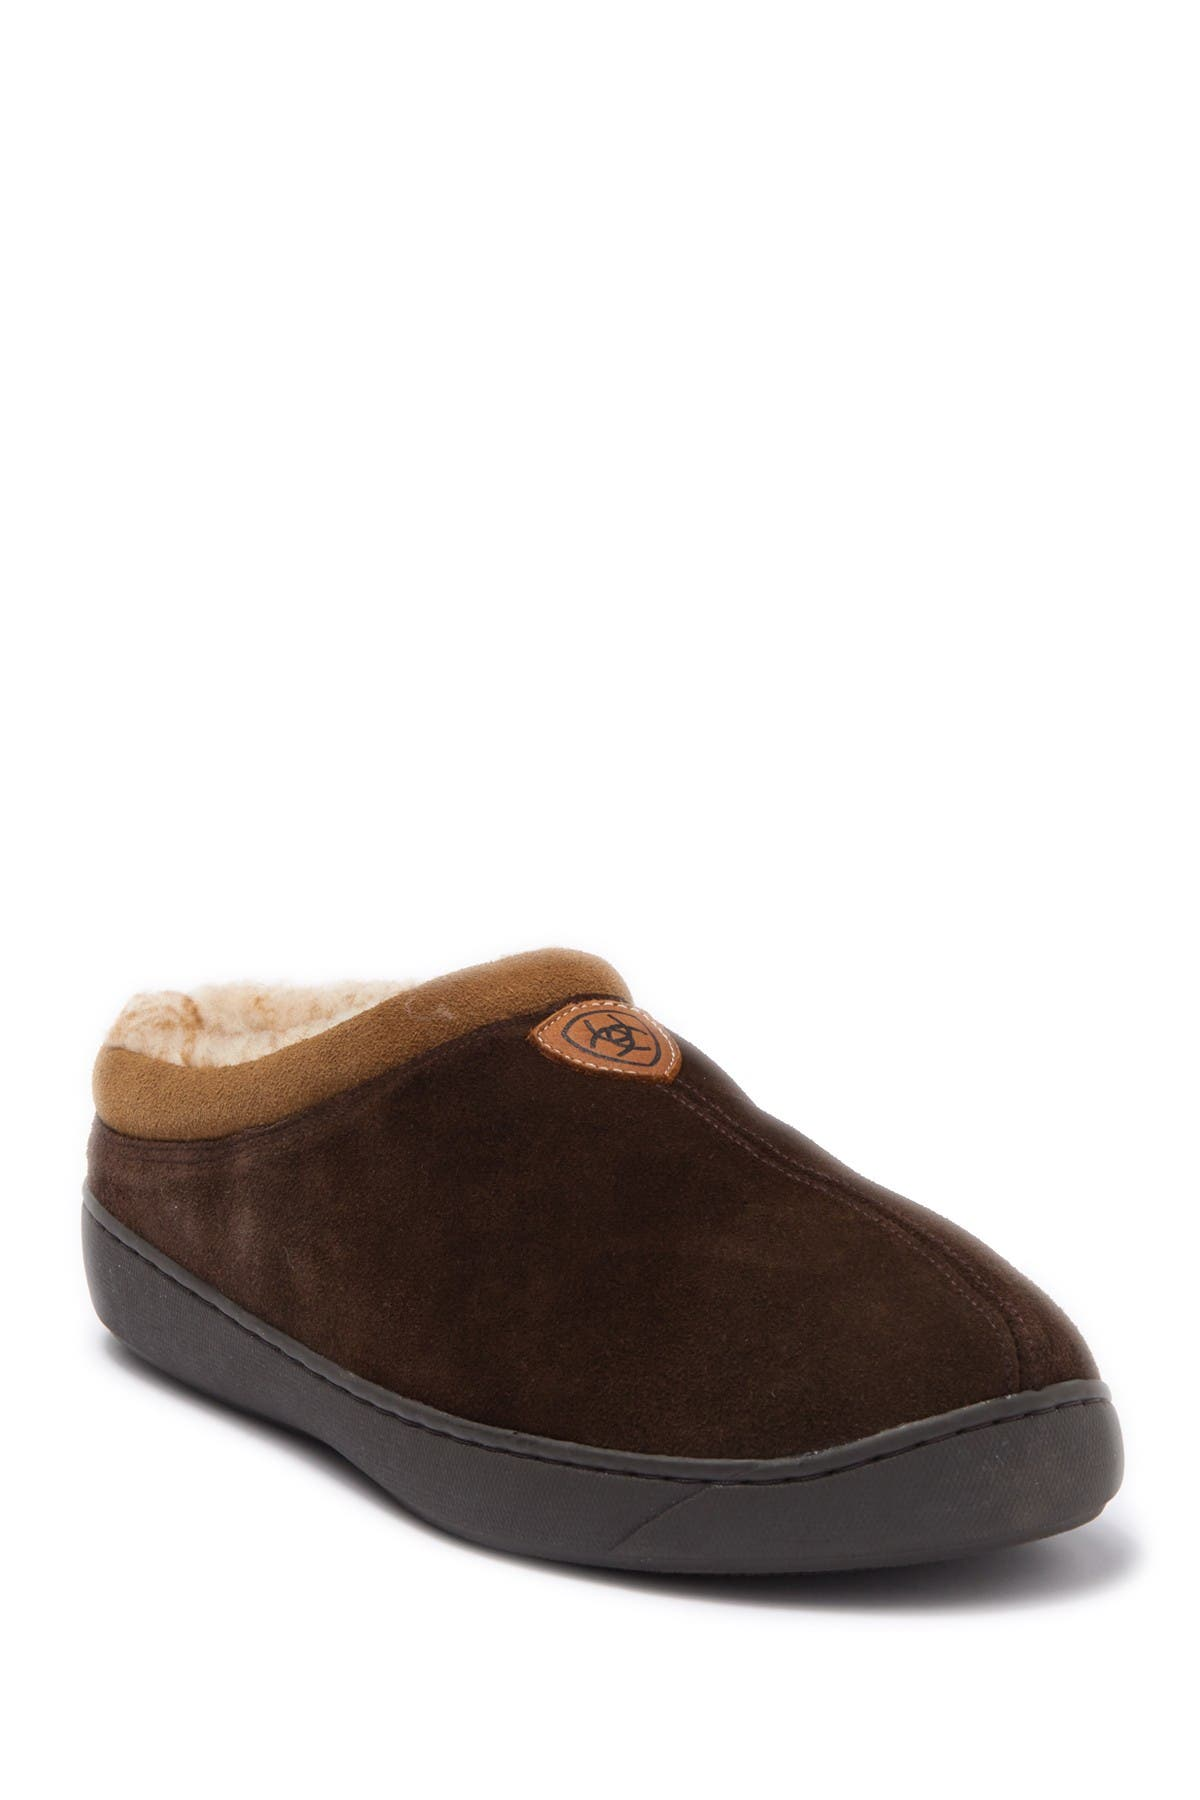 Ariat Suede & Faux Fur Lined Slipper In Chocolate